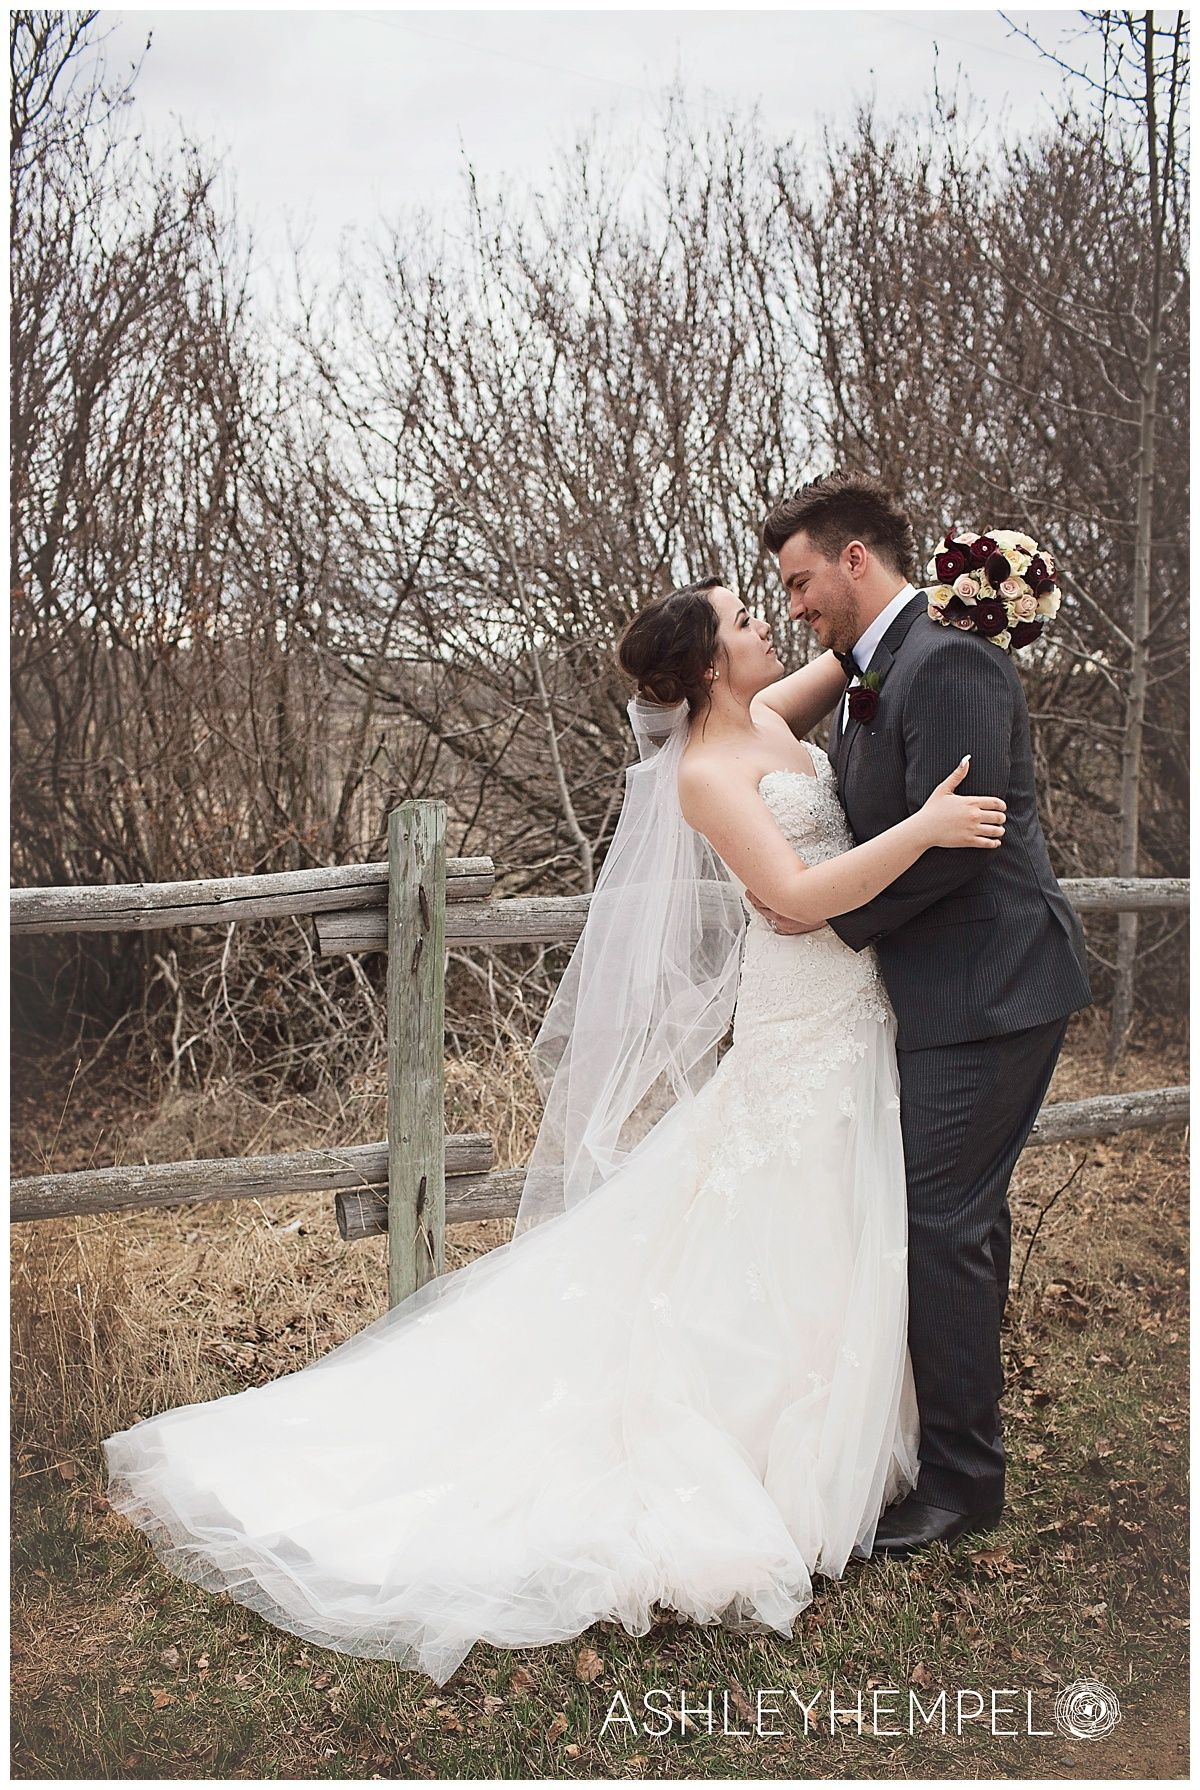 Fall outdoor wedding dresses  Wedding Photos  Wedding Dress  Outdoor Wedding  Ashley Hempel